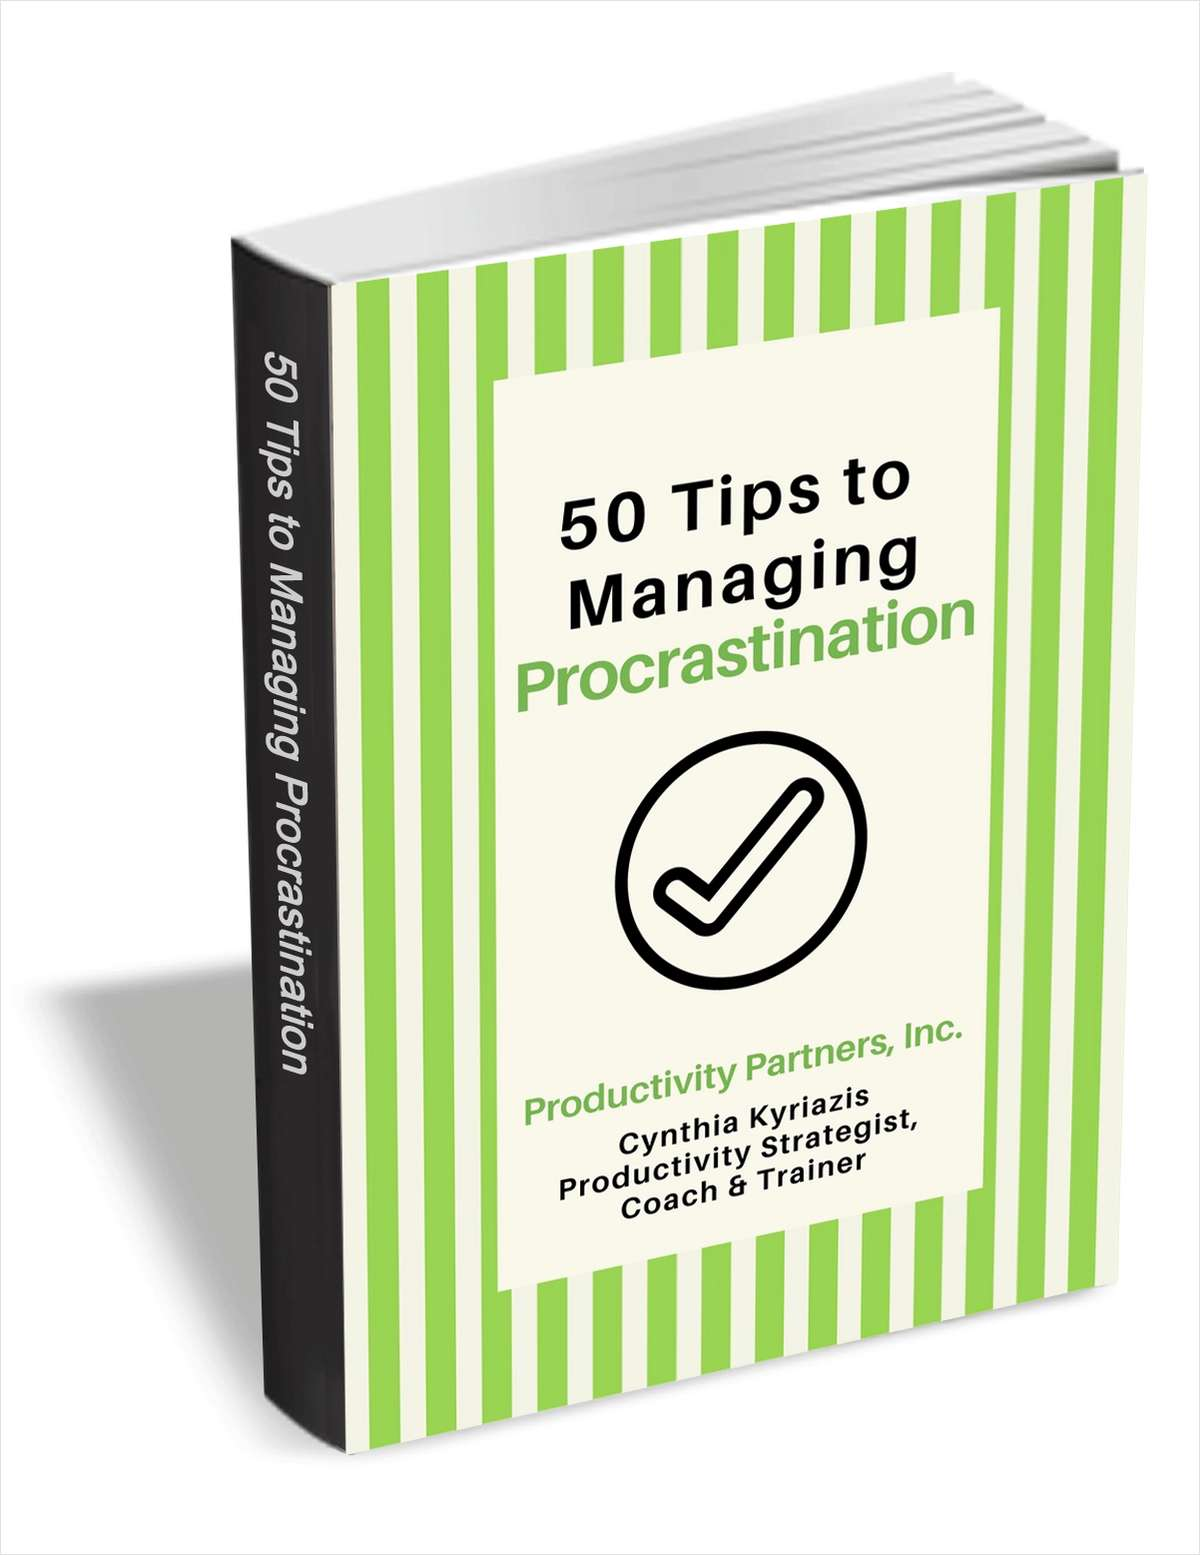 50 Tips to Managing Procrastination